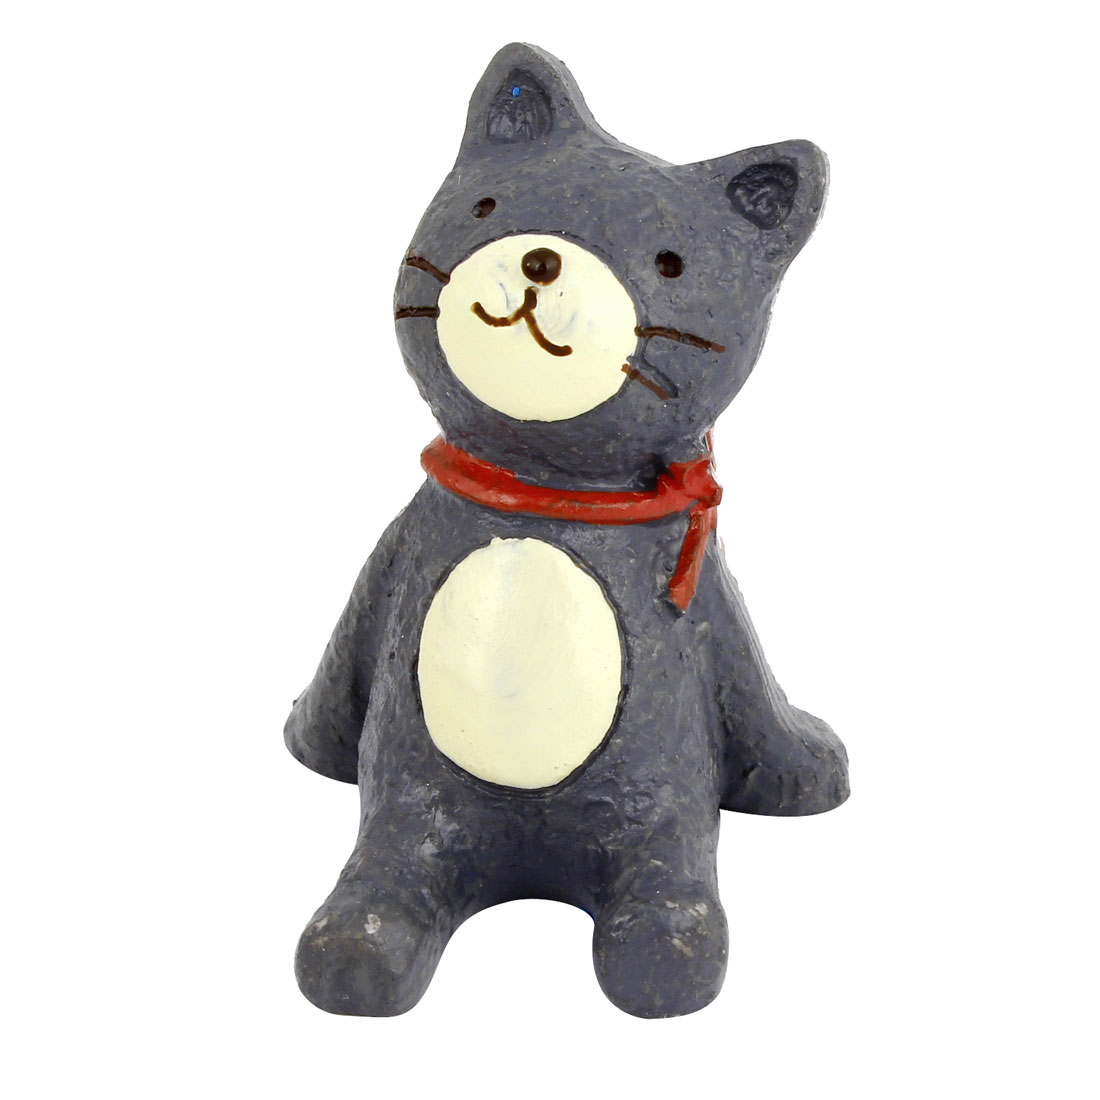 Tabletop Adorn Handmade Craft Cat Shape Ornament Gray